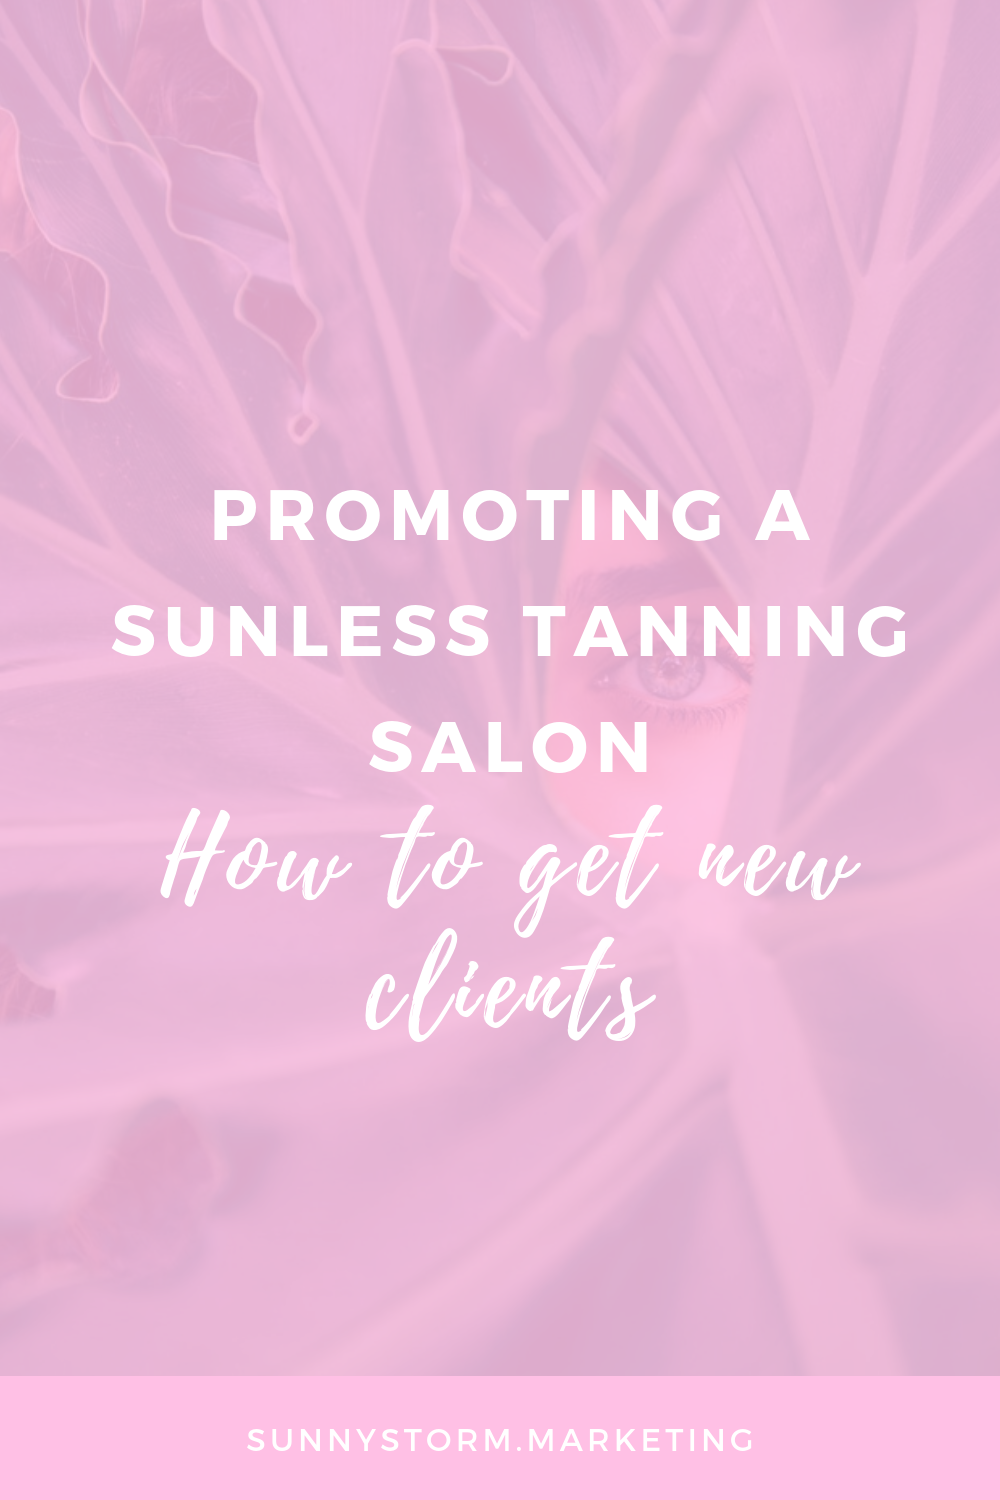 Marketing for spray tan businesses: how to get more clients